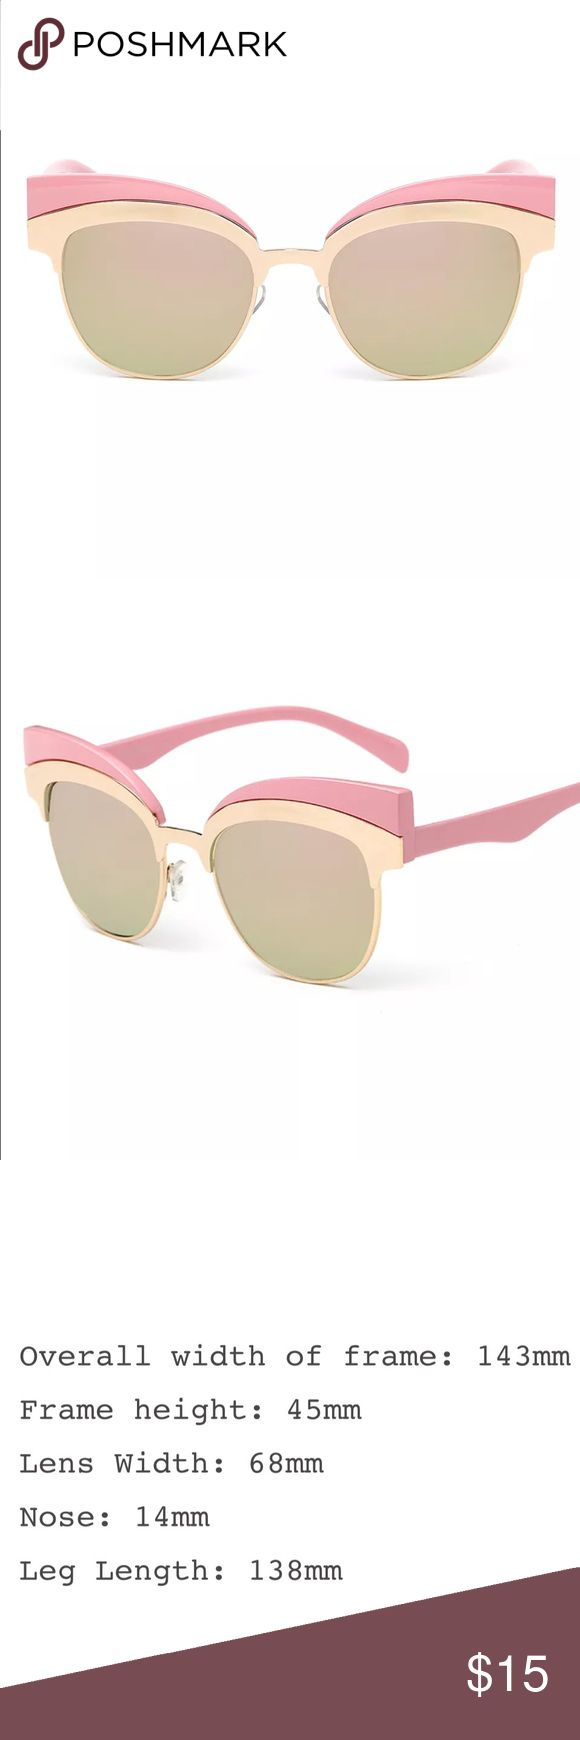 New✨ Pink & Gold Retro Cateye Sunnies 😍✨ New✨ Pink & Gold Retro Cateye Sunnies 😍✨  🔸Brand New✨ 🔸PRICE IS FIRM- already listed at lowest price  🔸If you want to save please look into bundling  🔸In Stock 🔸No Trades 🔸Will ship same day as long as order is received by 1:00pm PST Accessories Sunglasses